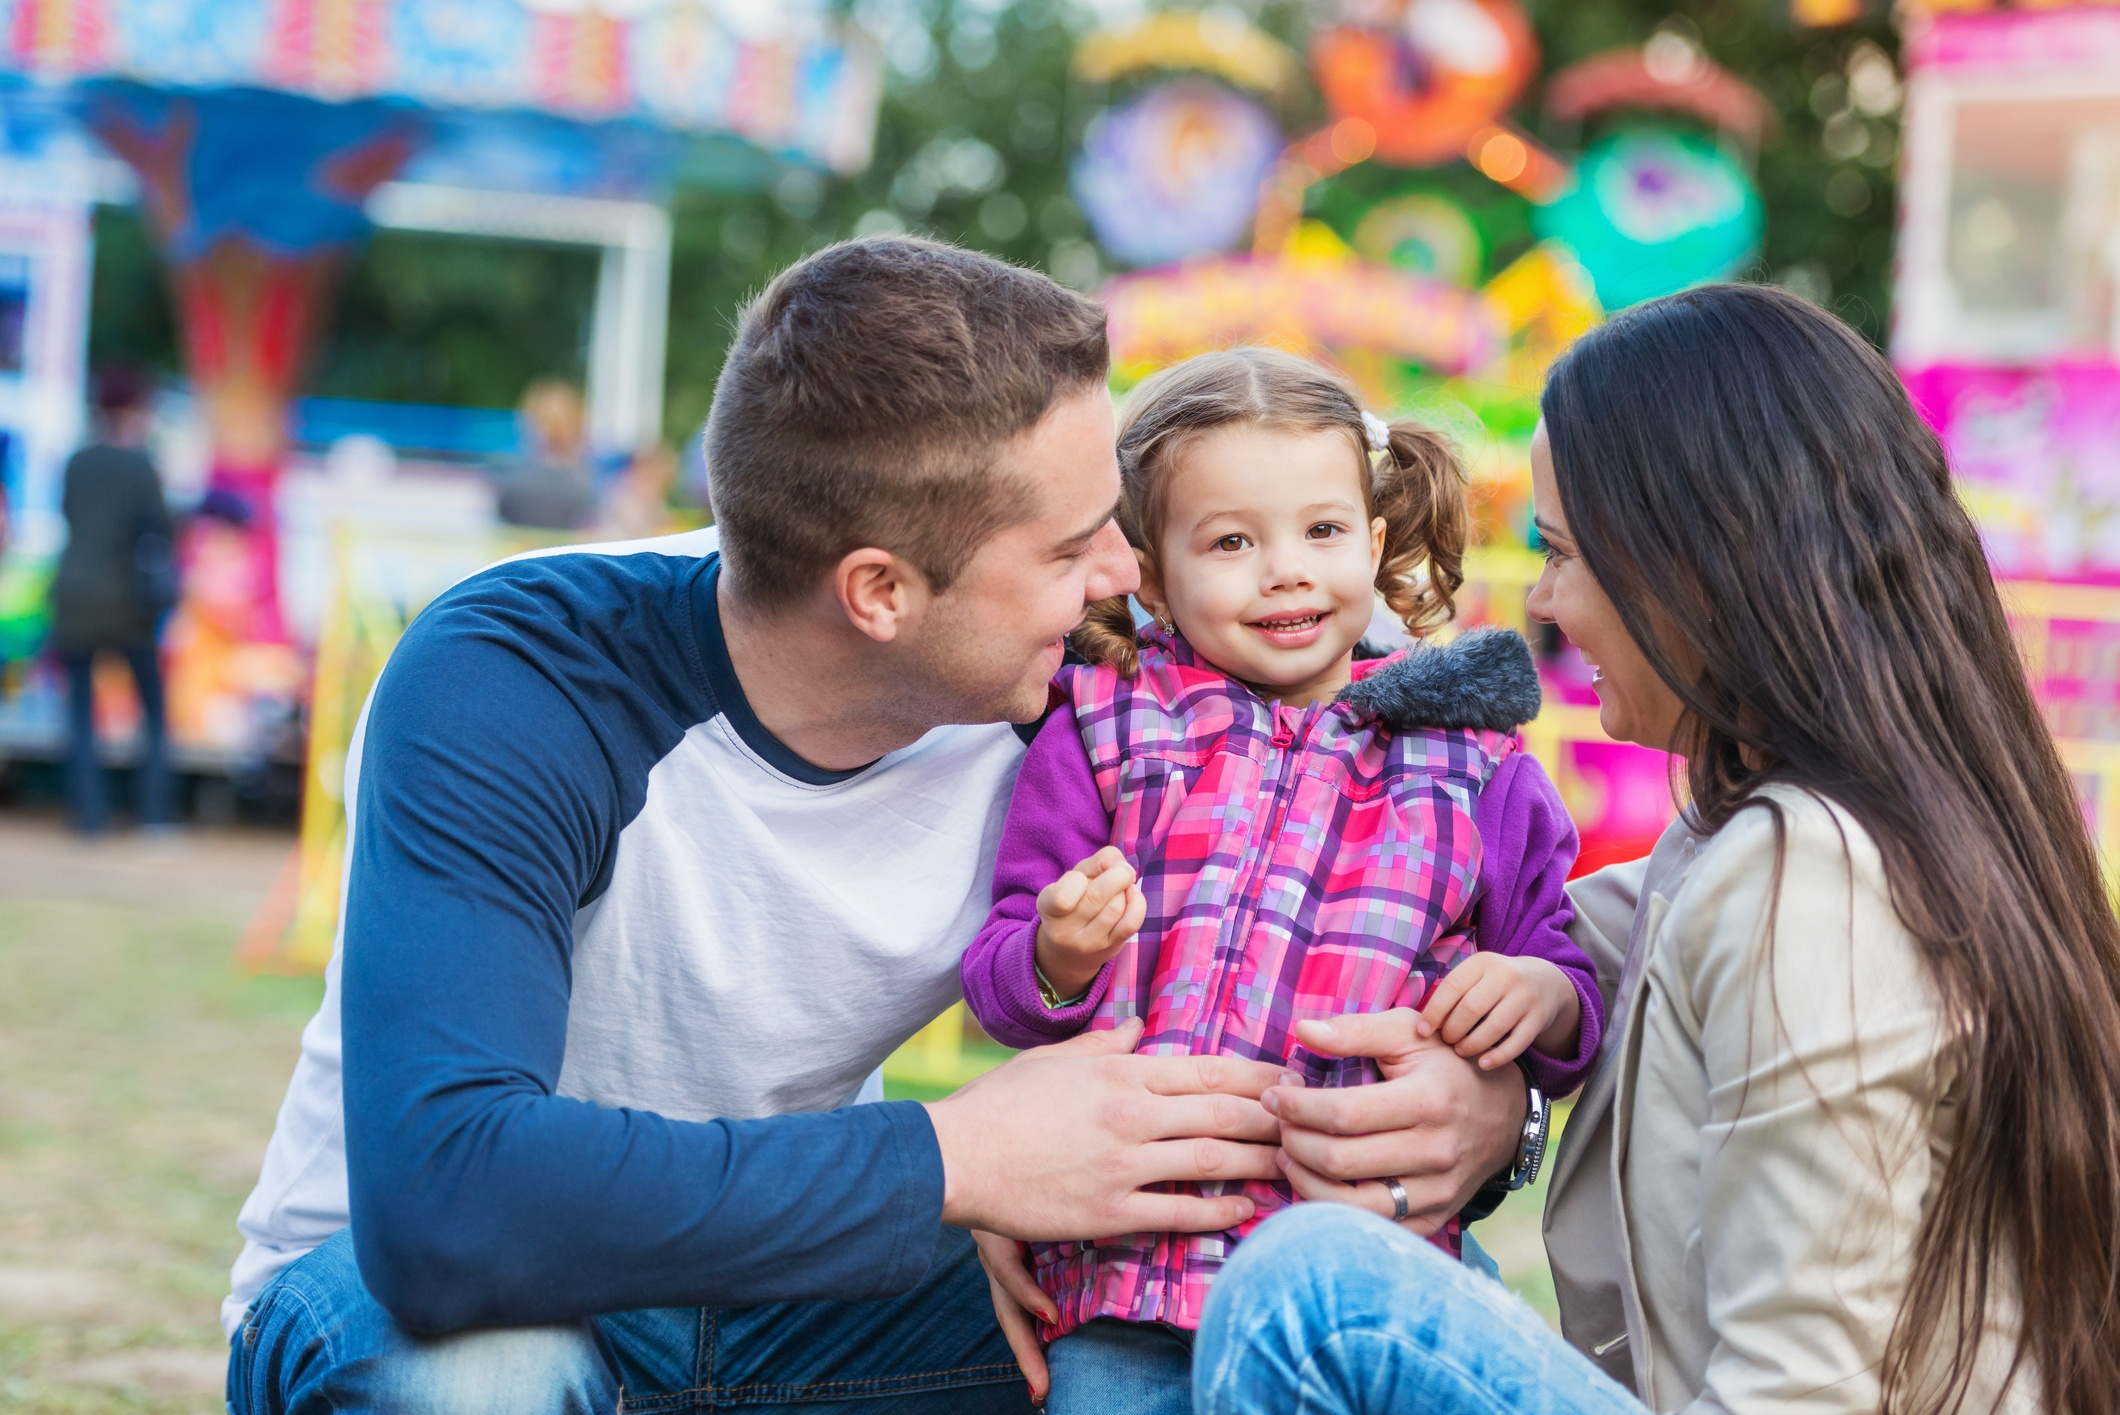 amusement parks for kids with disabilities